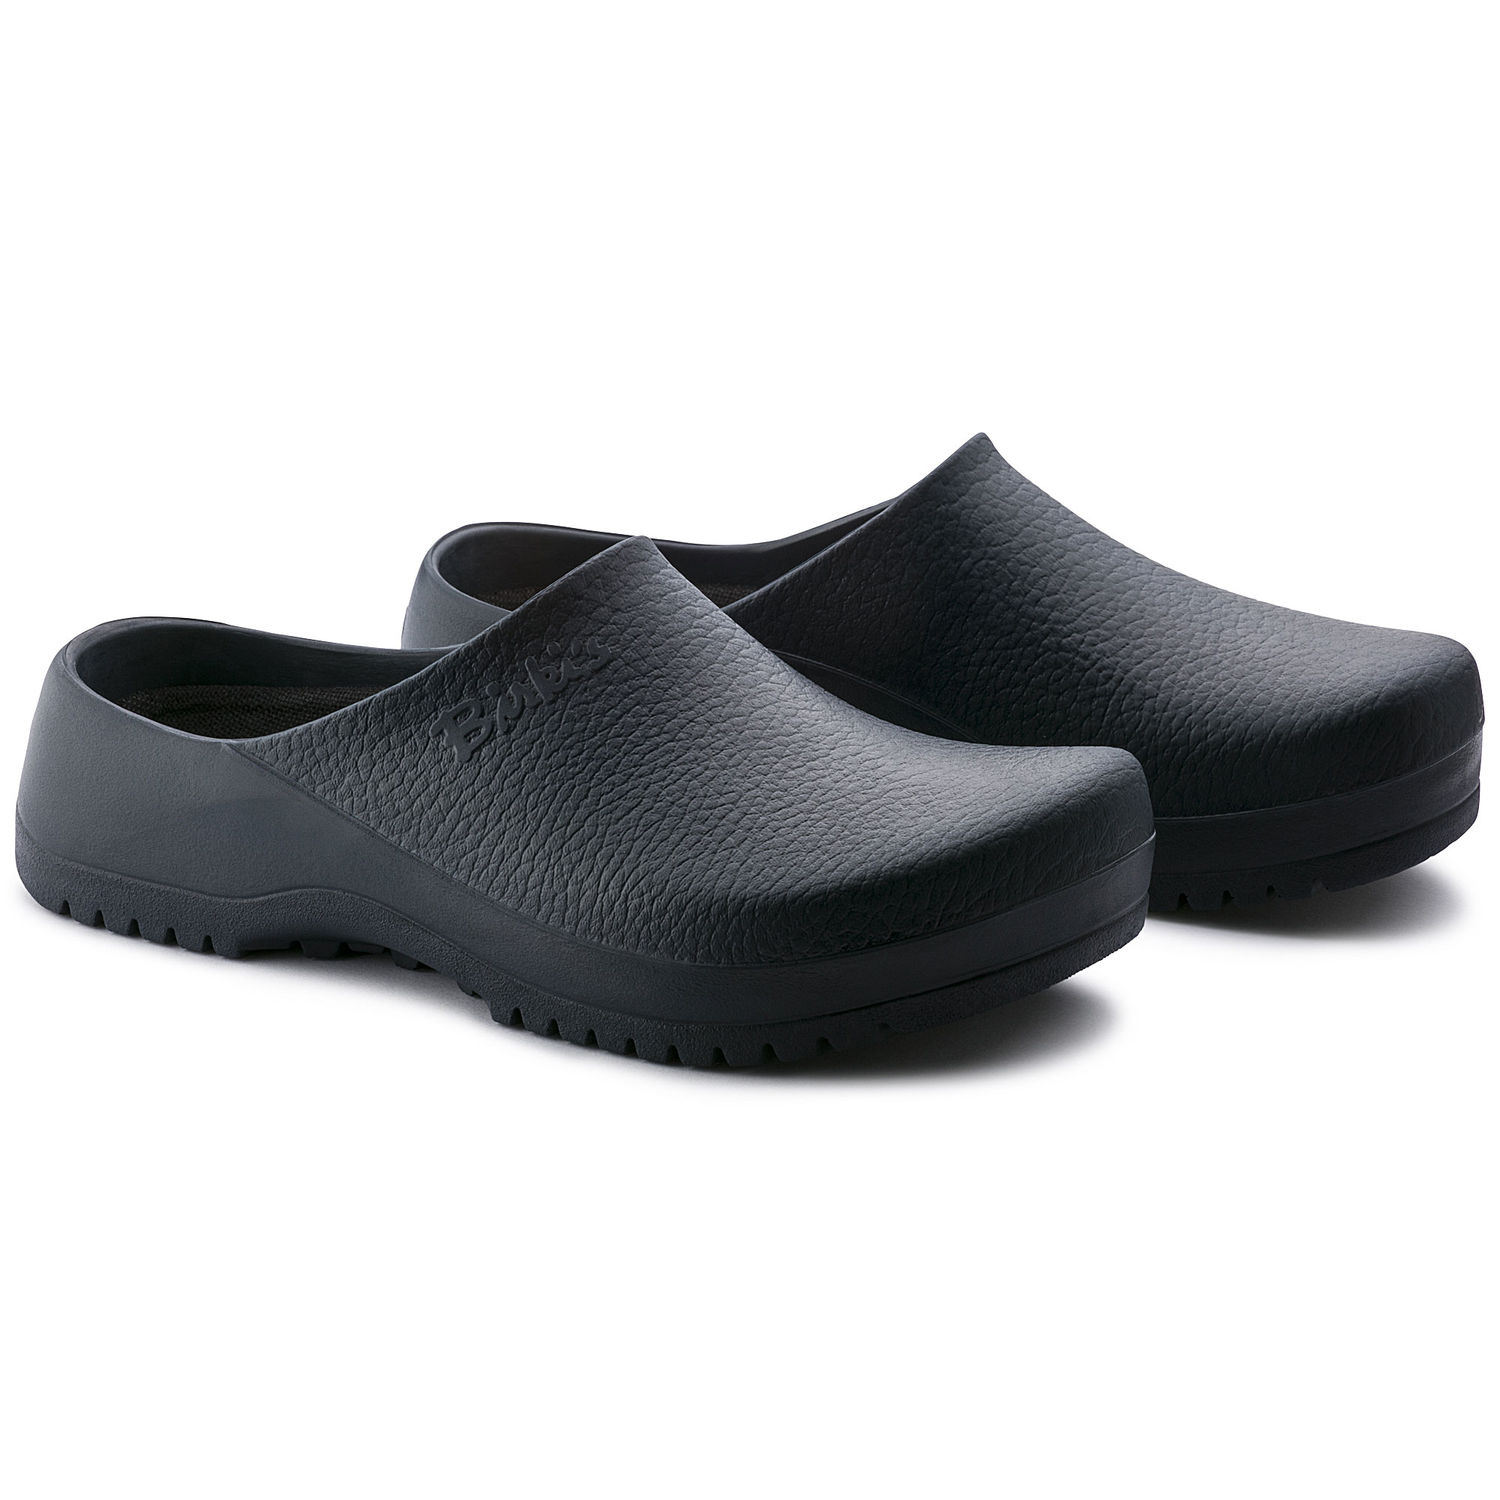 Best Clog Shoes For Woman